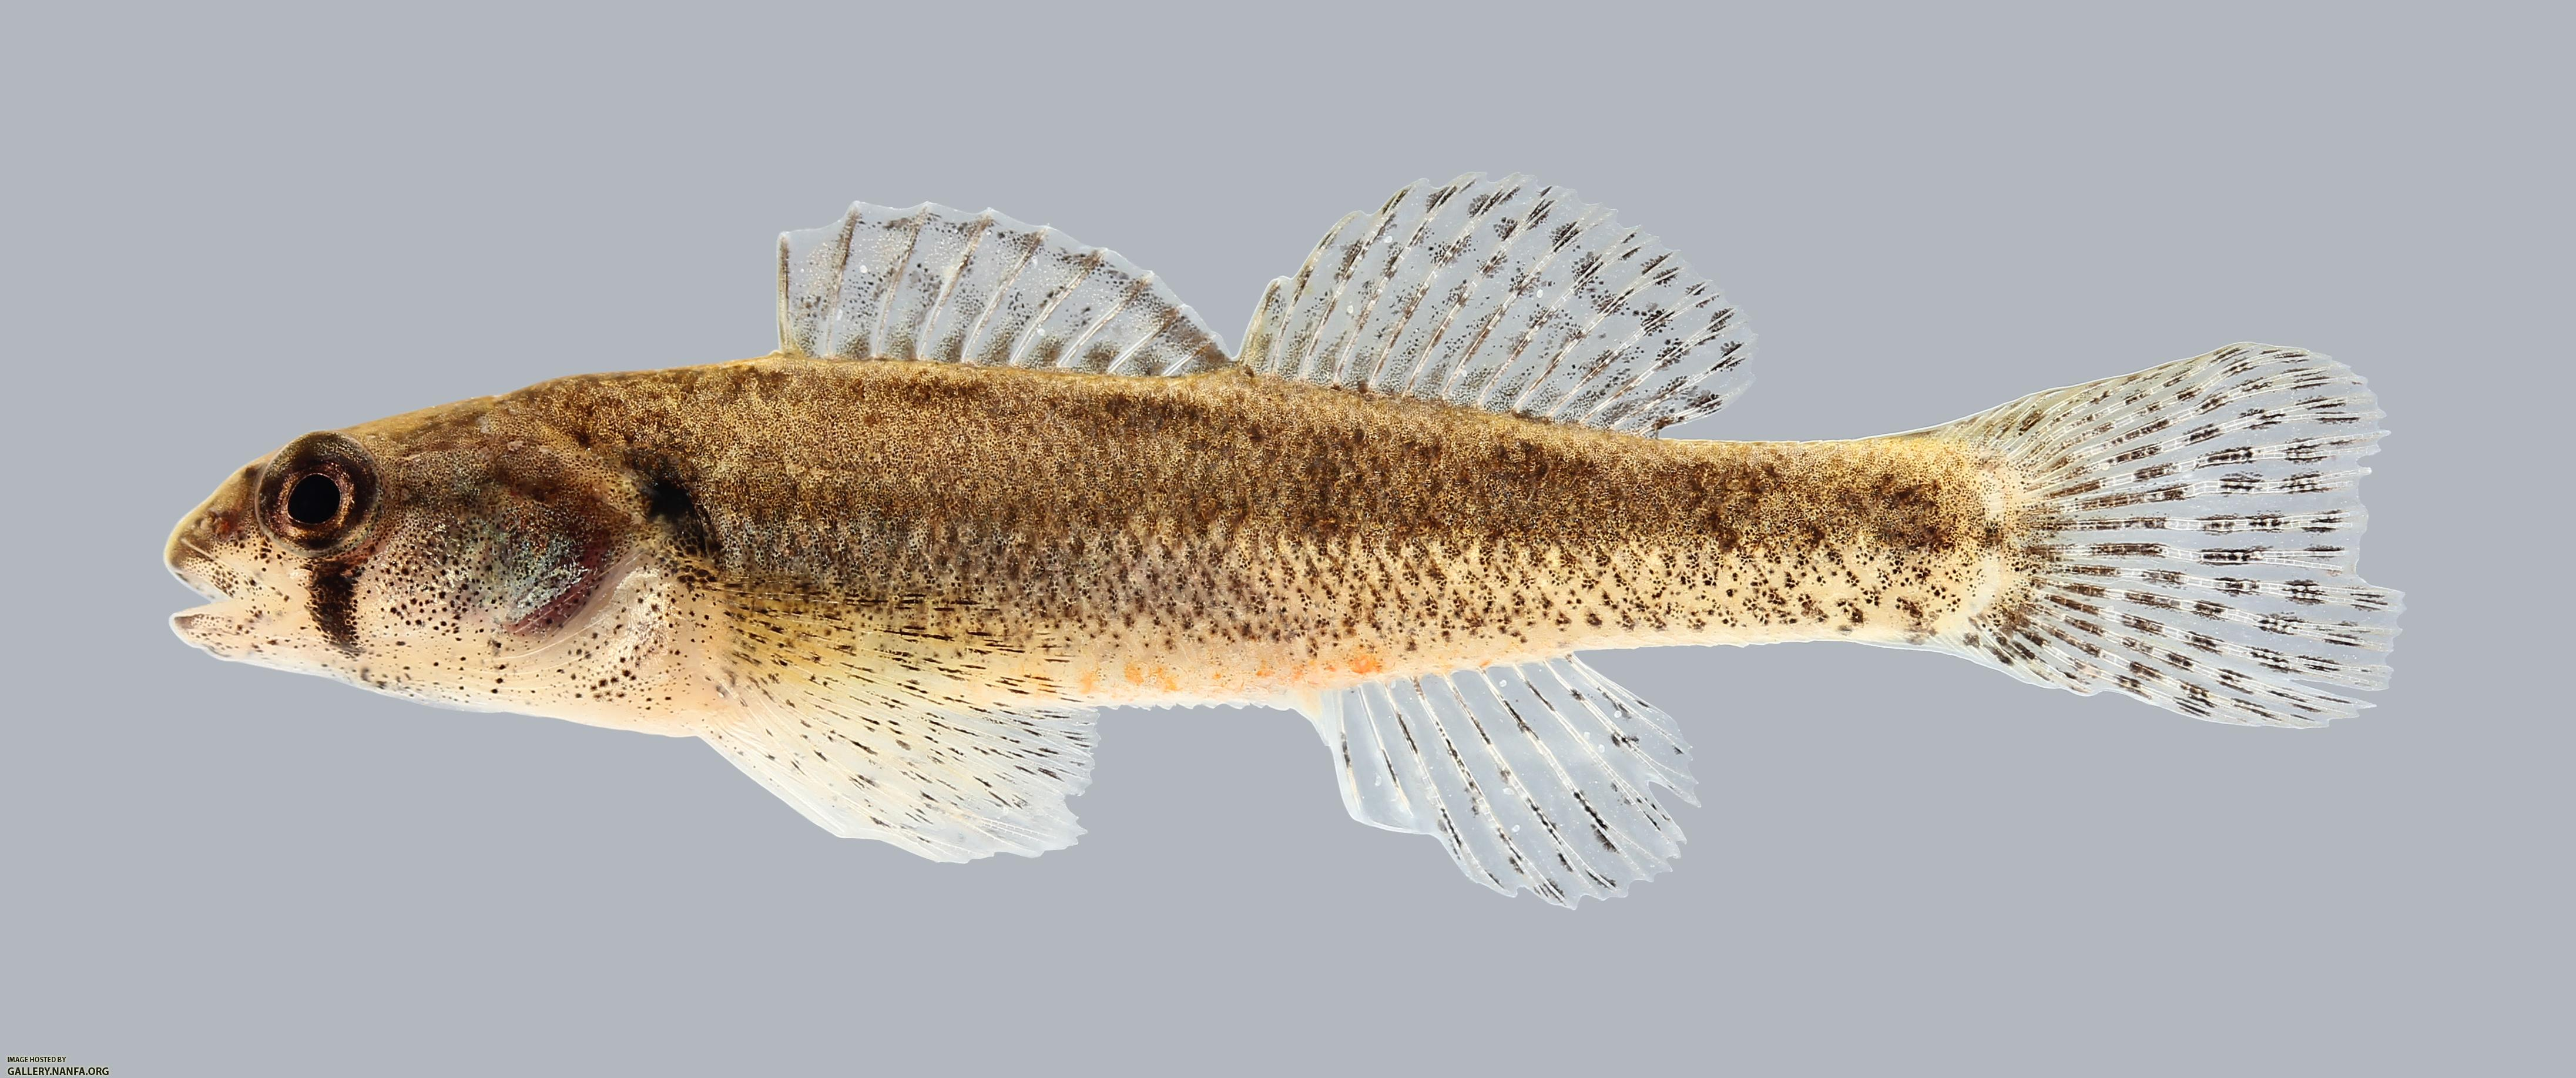 Etheostoma cragini Arkansas Darter 1368